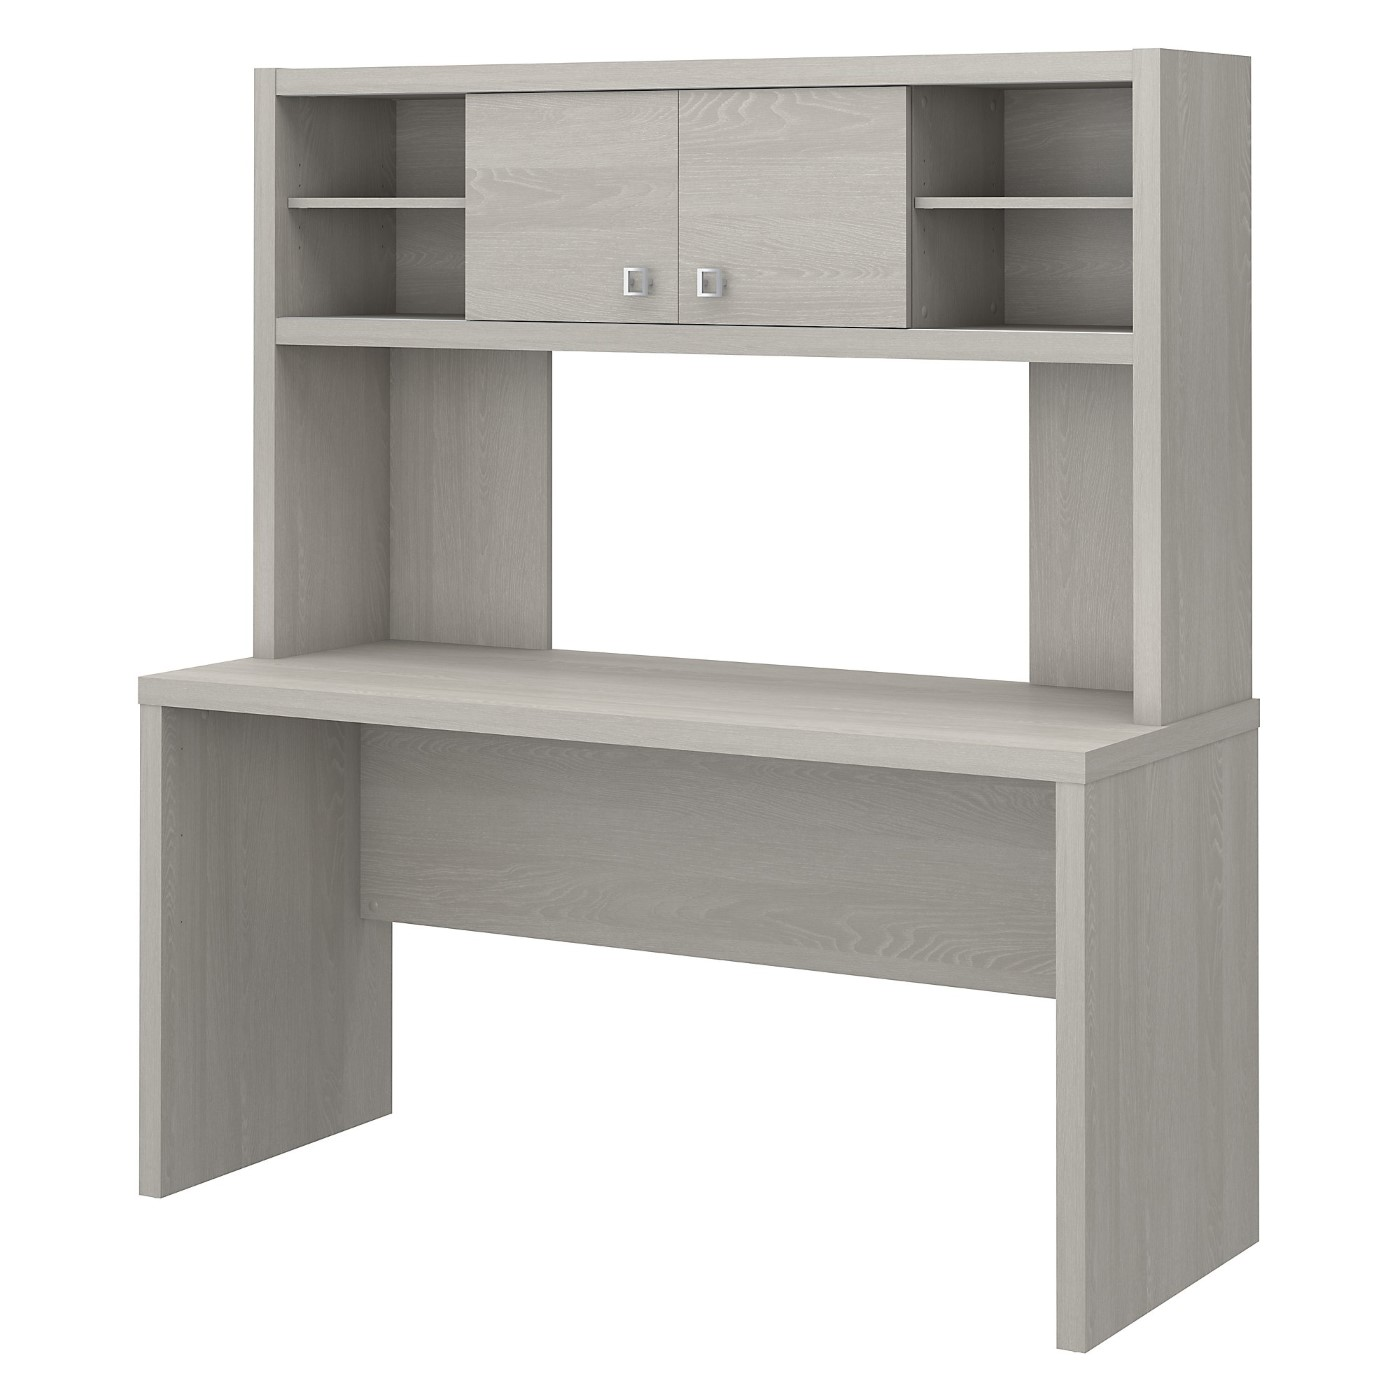 </b></font><b>The kathy ireland� Echo 60W Credenza Desk with Hutch is Sustainable Eco Friendly Furniture. Includes Free Shipping! 30H x 72L x 72W</b></font>  VIDEO BELOW. <p>RATING:&#11088;&#11088;&#11088;&#11088;&#11088;</b></font></b>